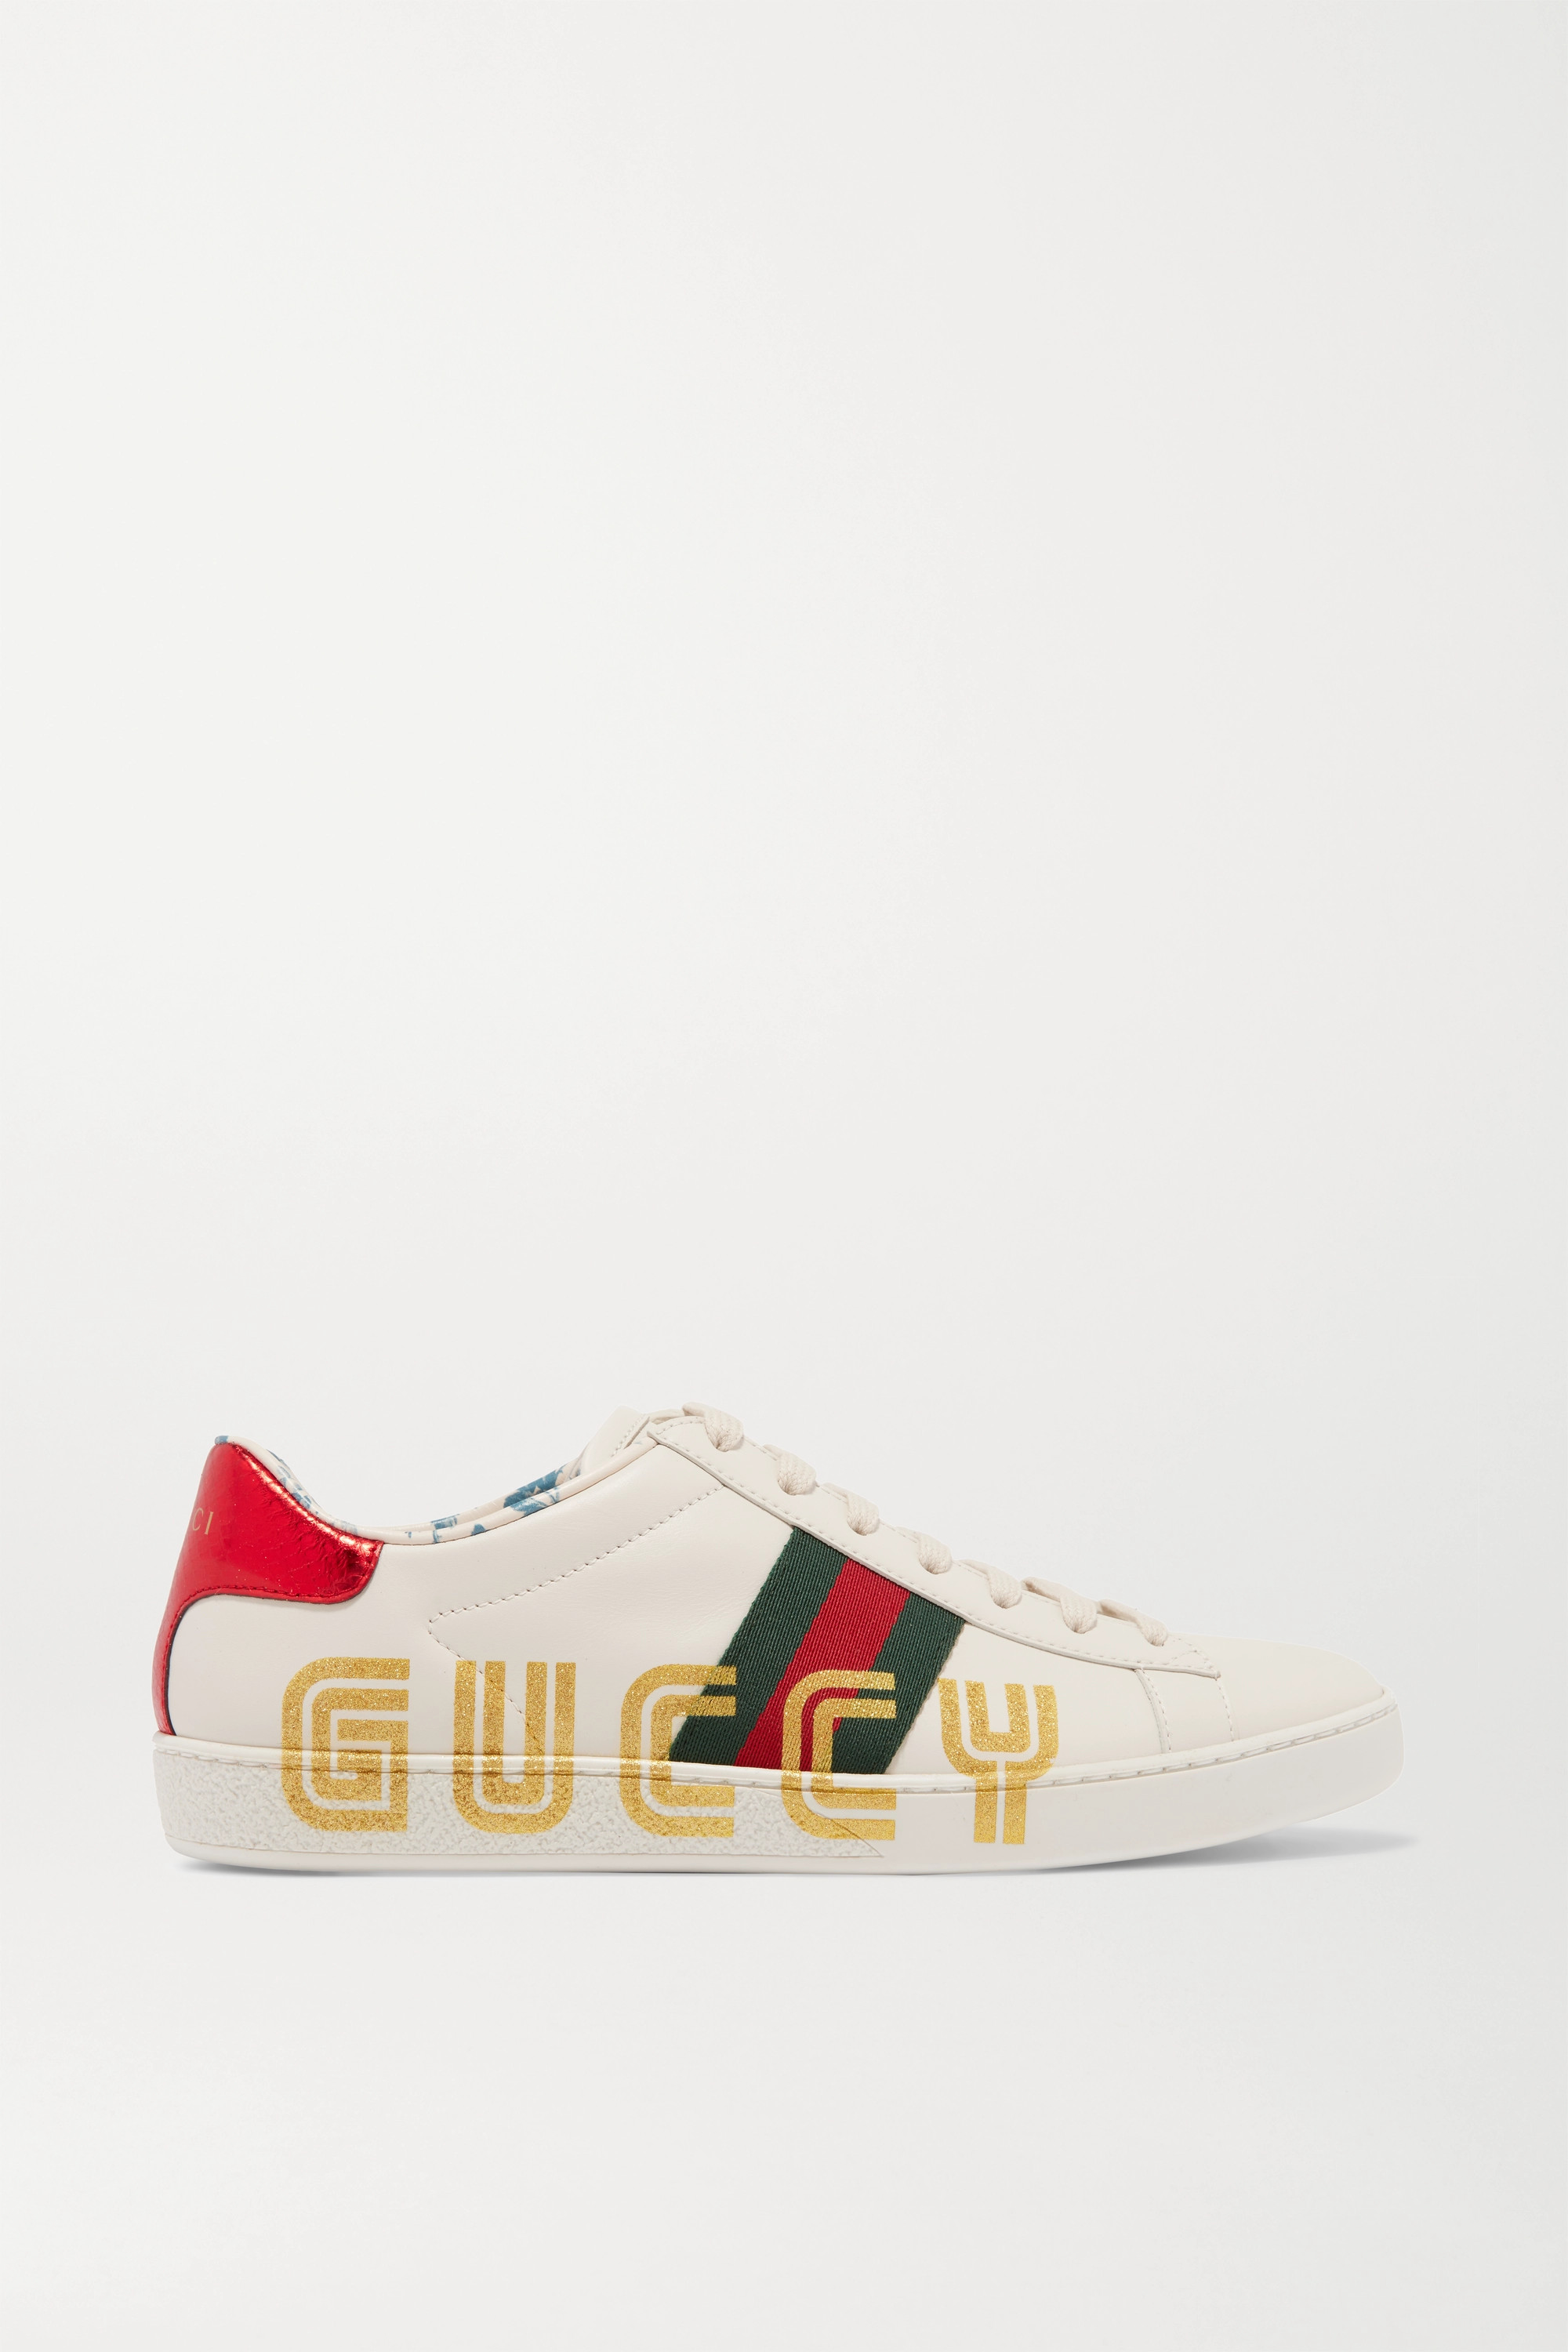 Gucci Ace metallic watersnake-trimmed logo-print leather sneakers